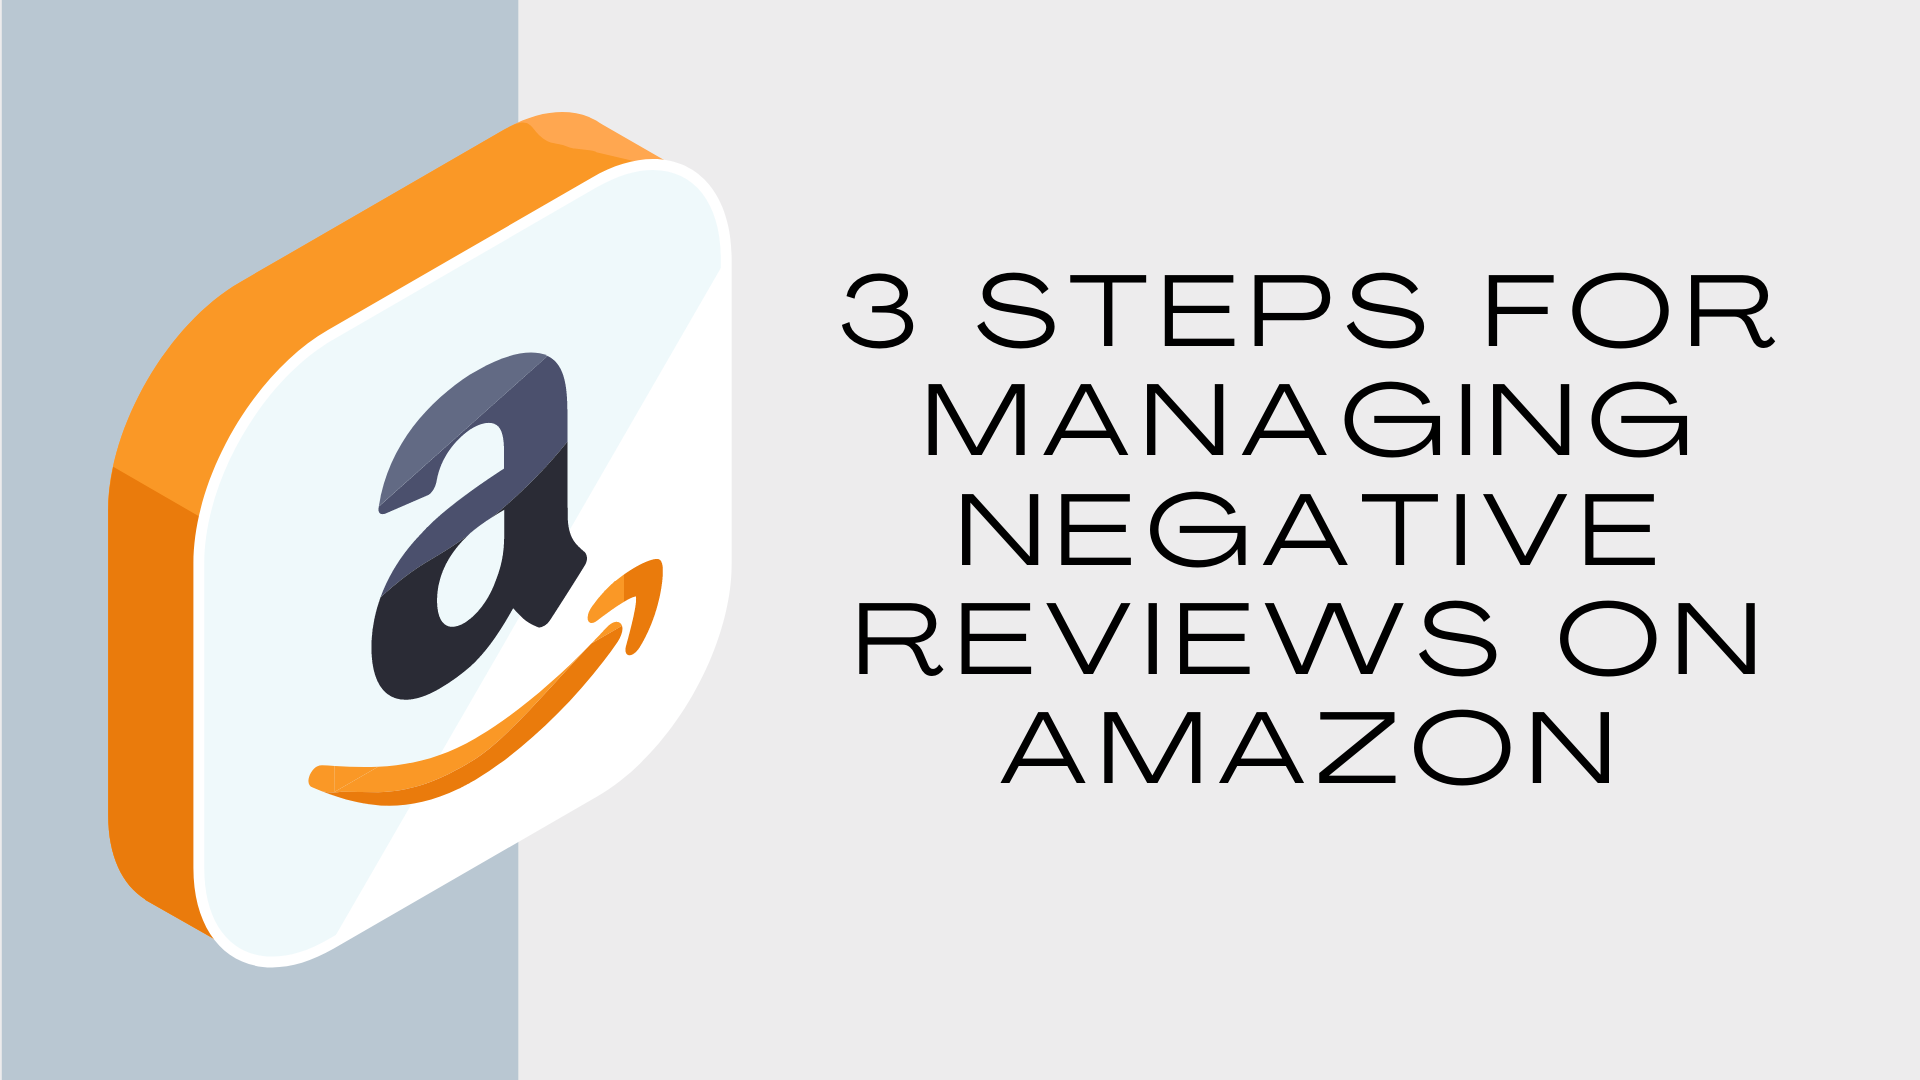 3 Steps for Managing Negative Reviews on Amazon